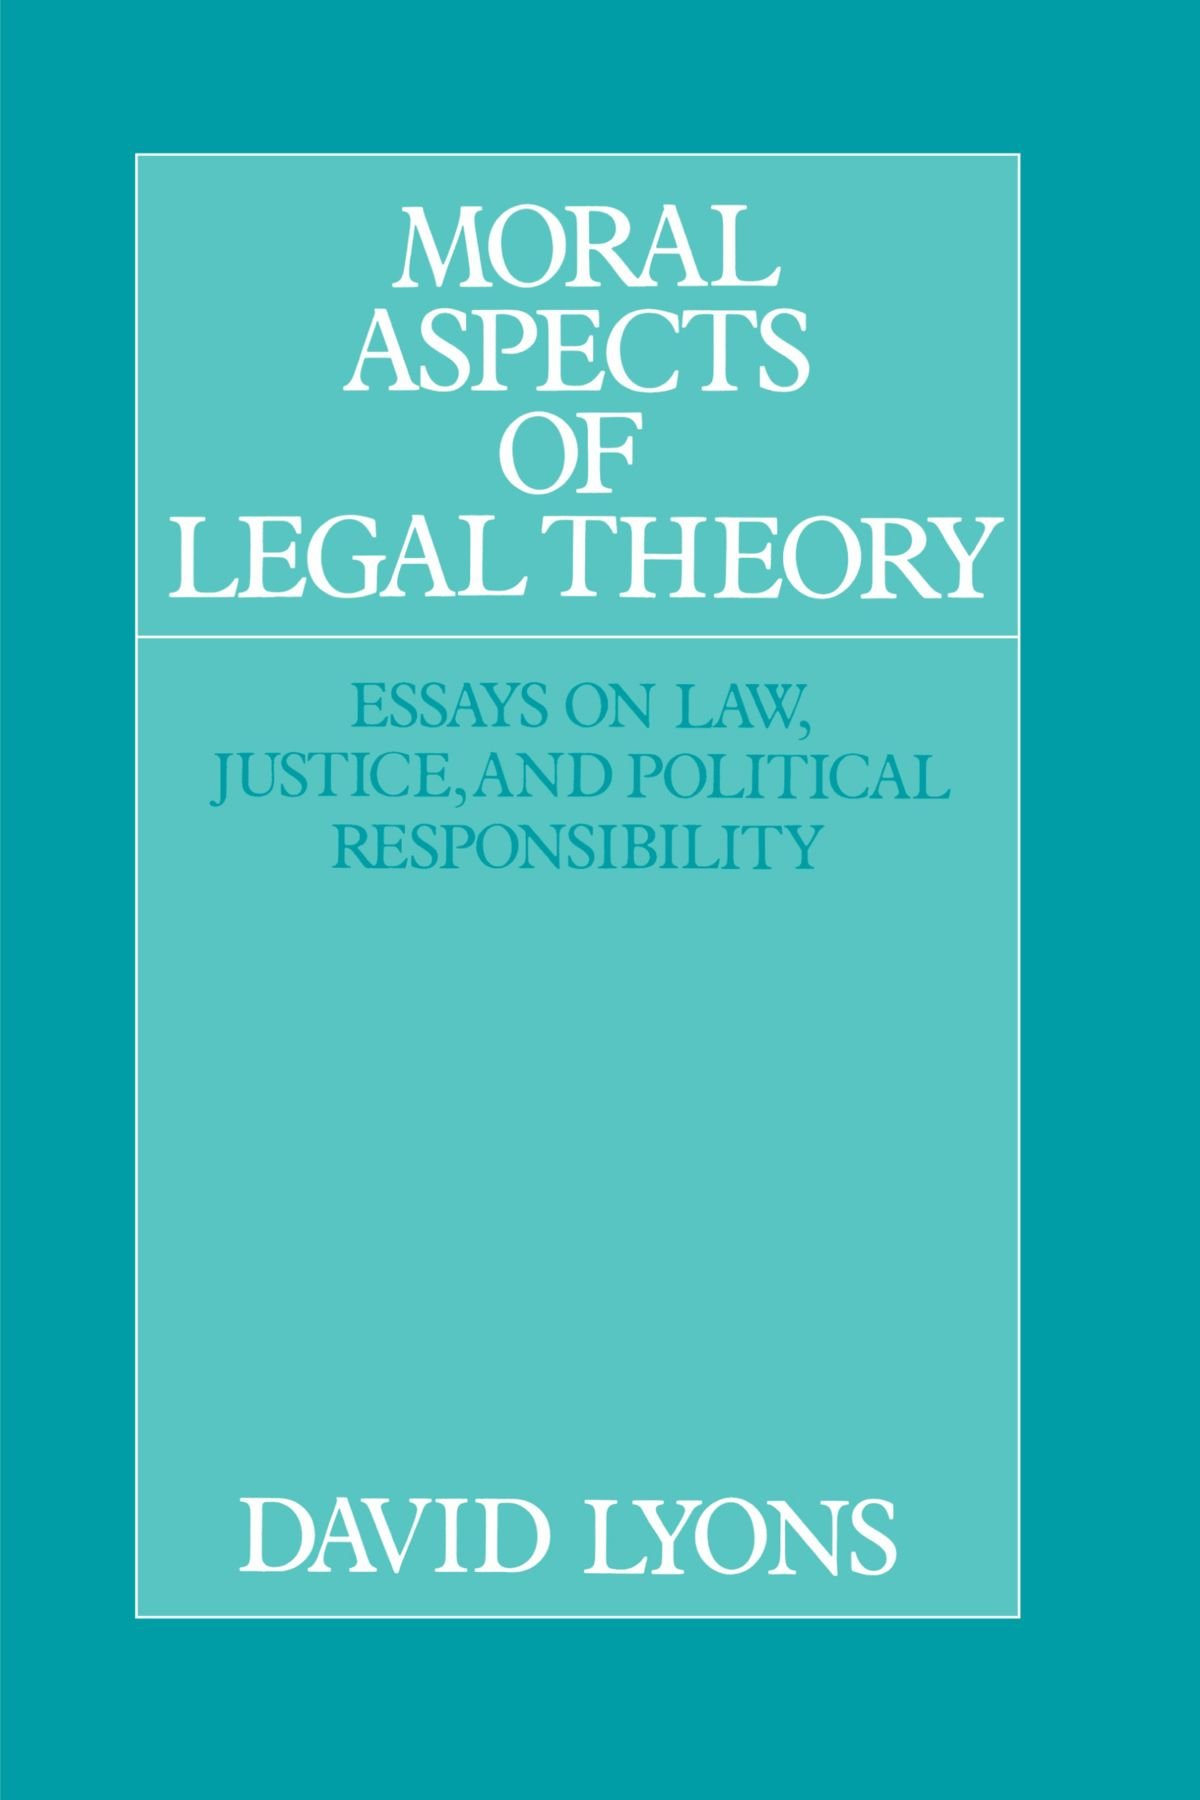 Moral Aspects of Legal Theory: Essays on Law, Justice, and Political Responsibility by Cambridge University Press